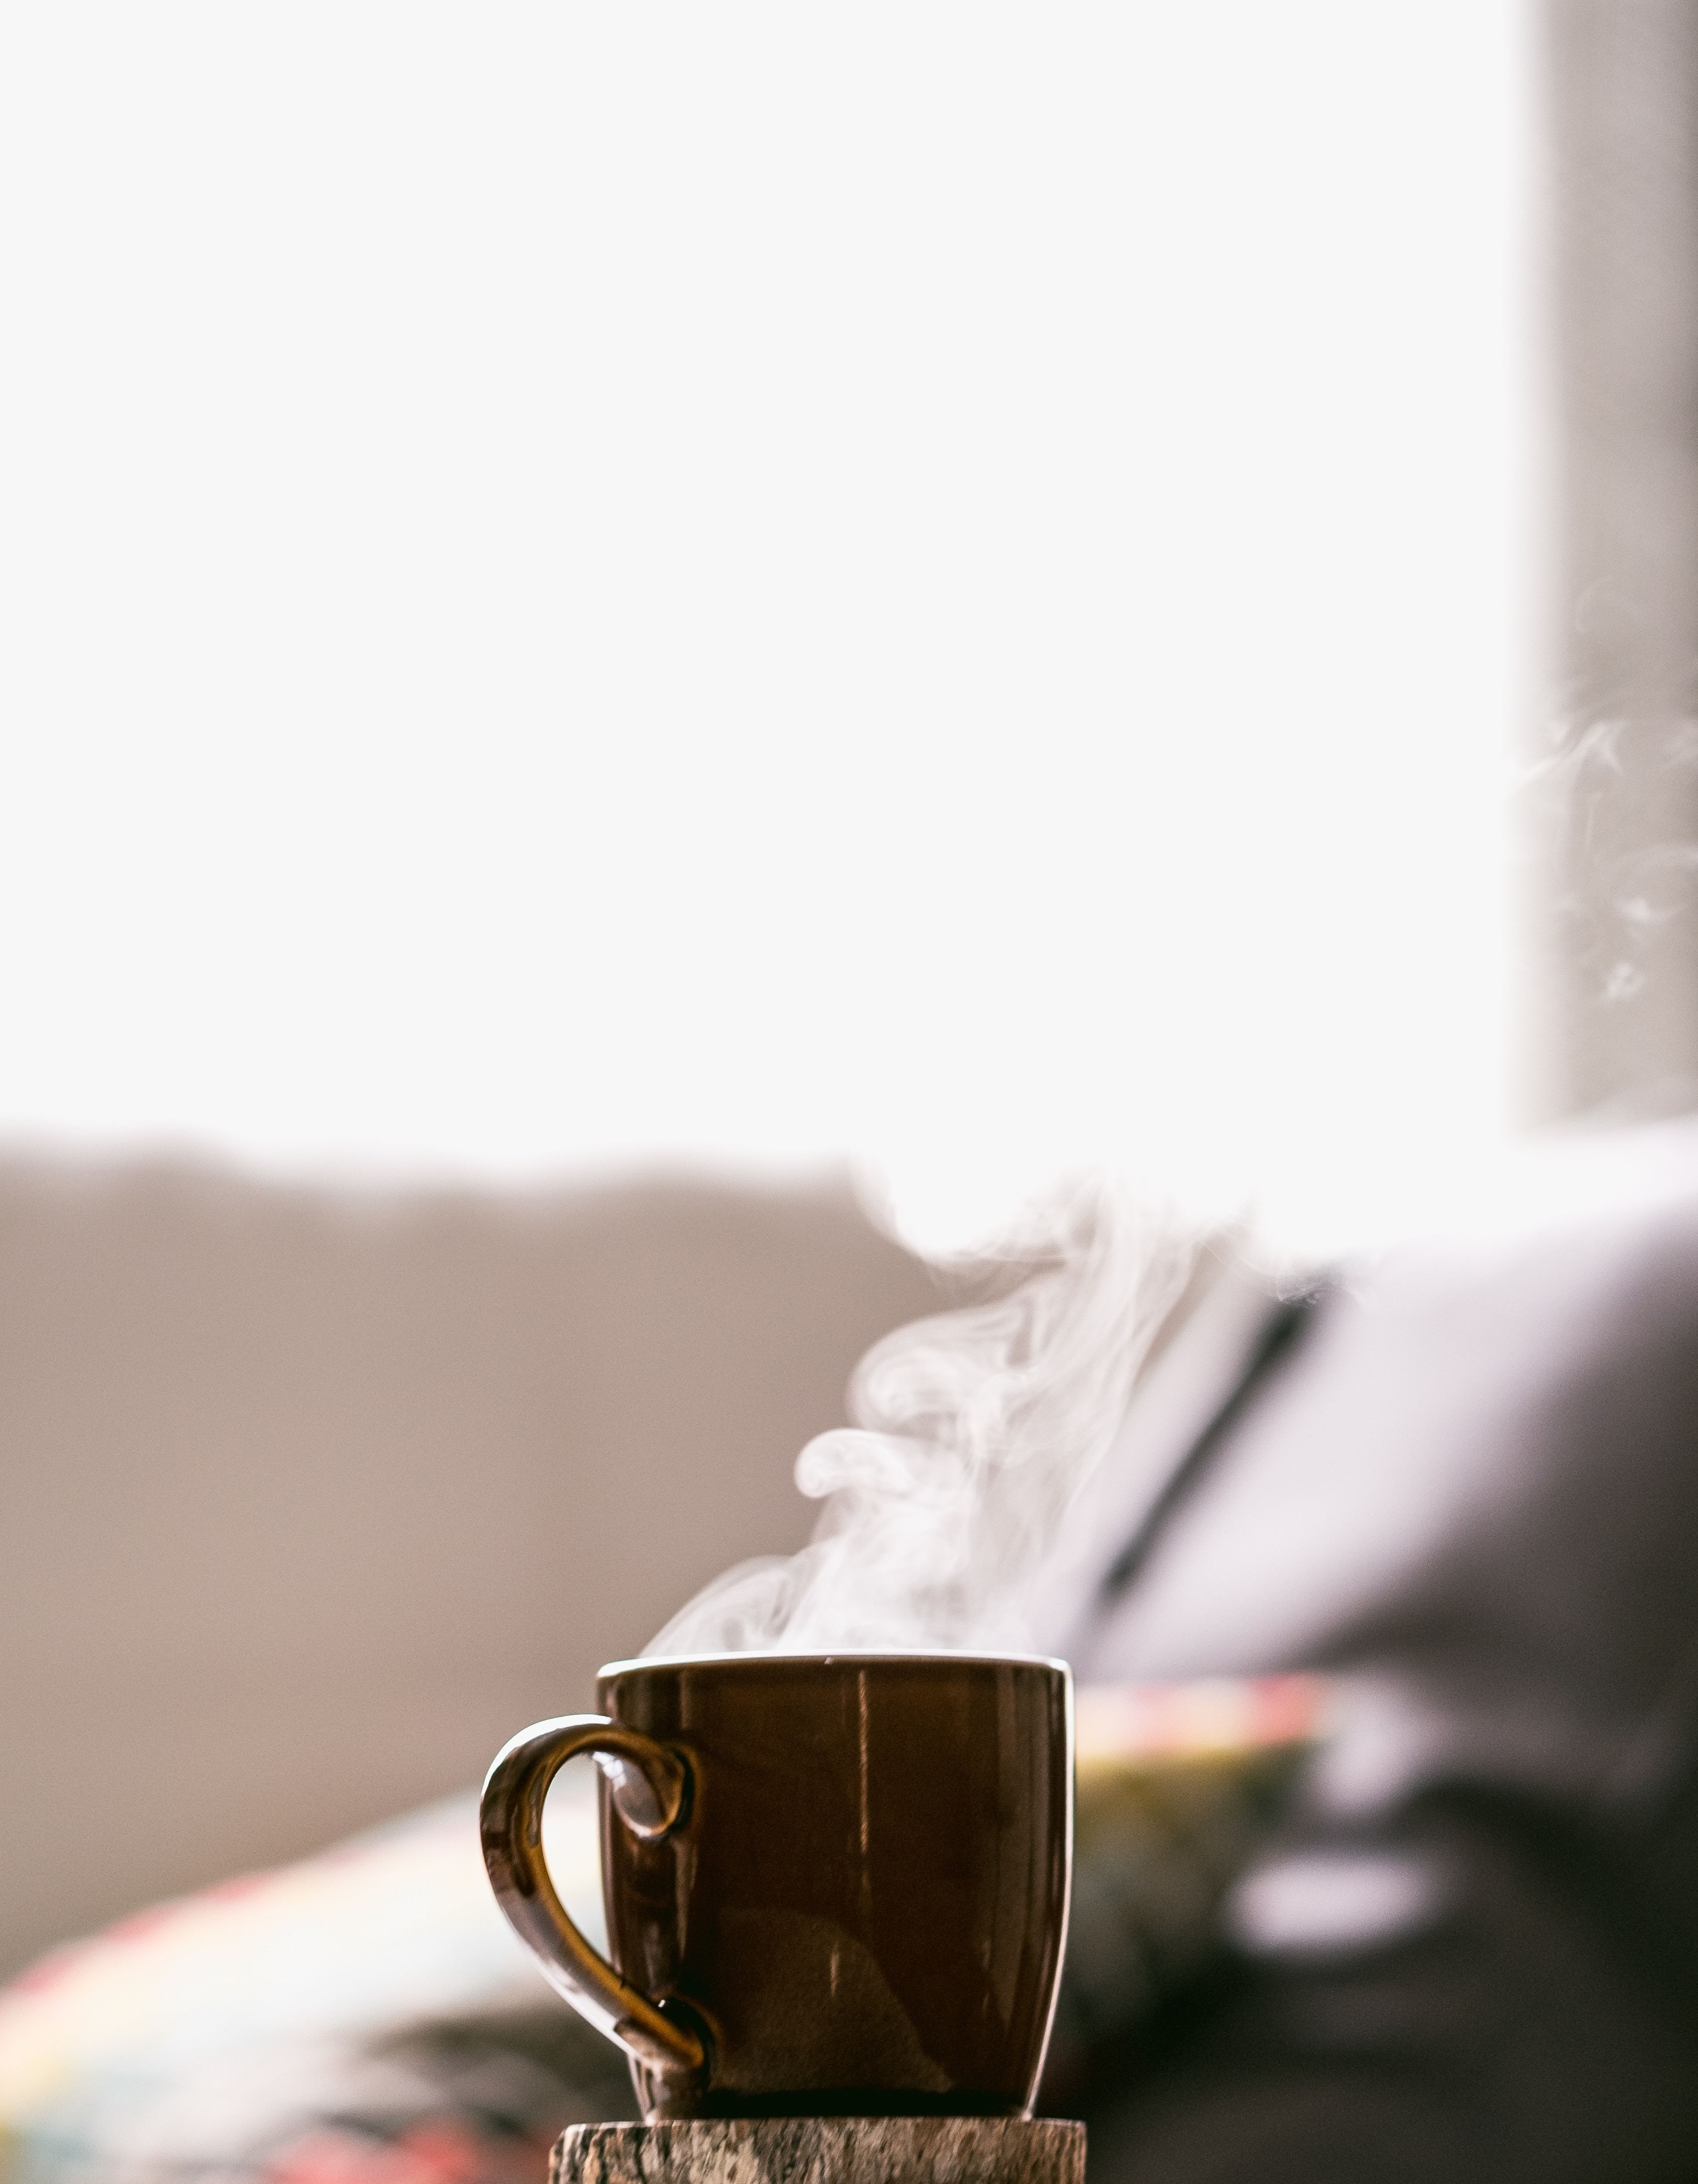 Top 18 Questions And Answers About Coffee And Your Health